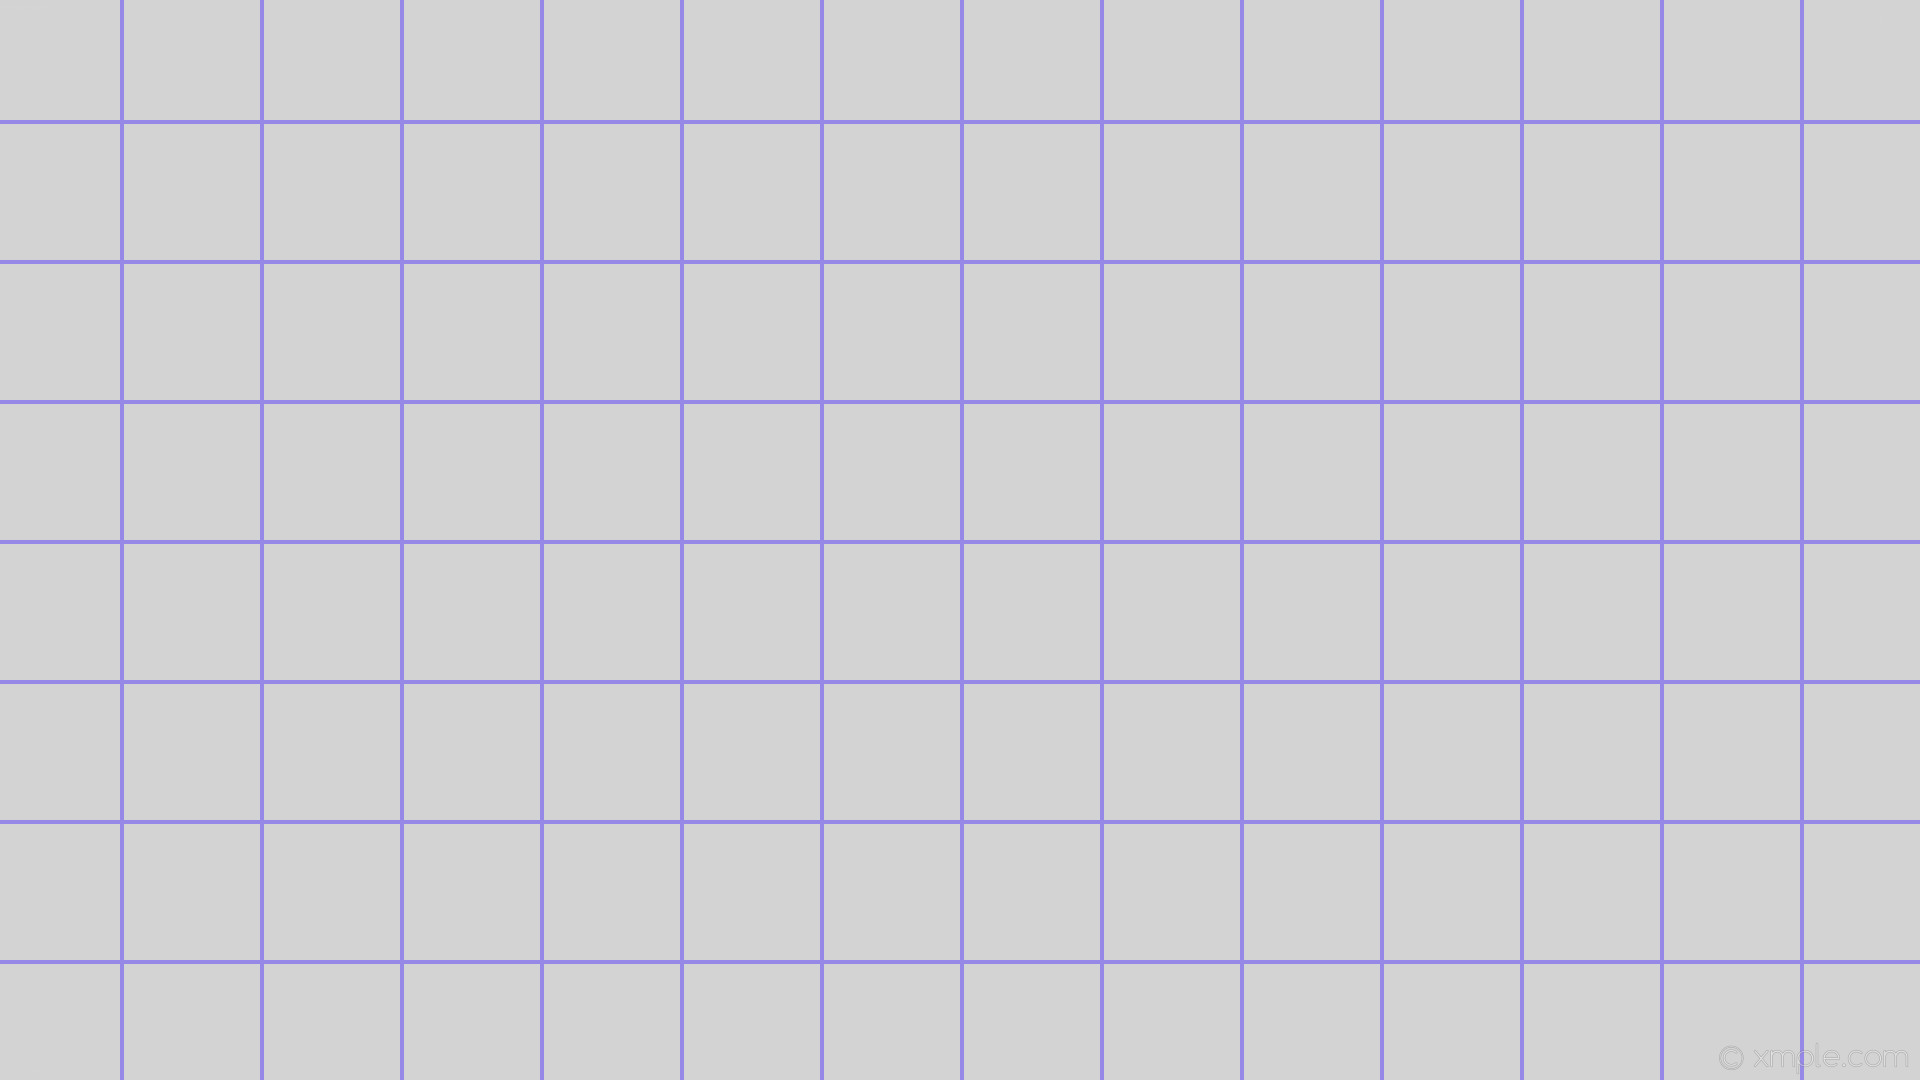 wallpaper graph paper purple grid grey light gray medium slate blue #d3d3d3  #7b68ee 0